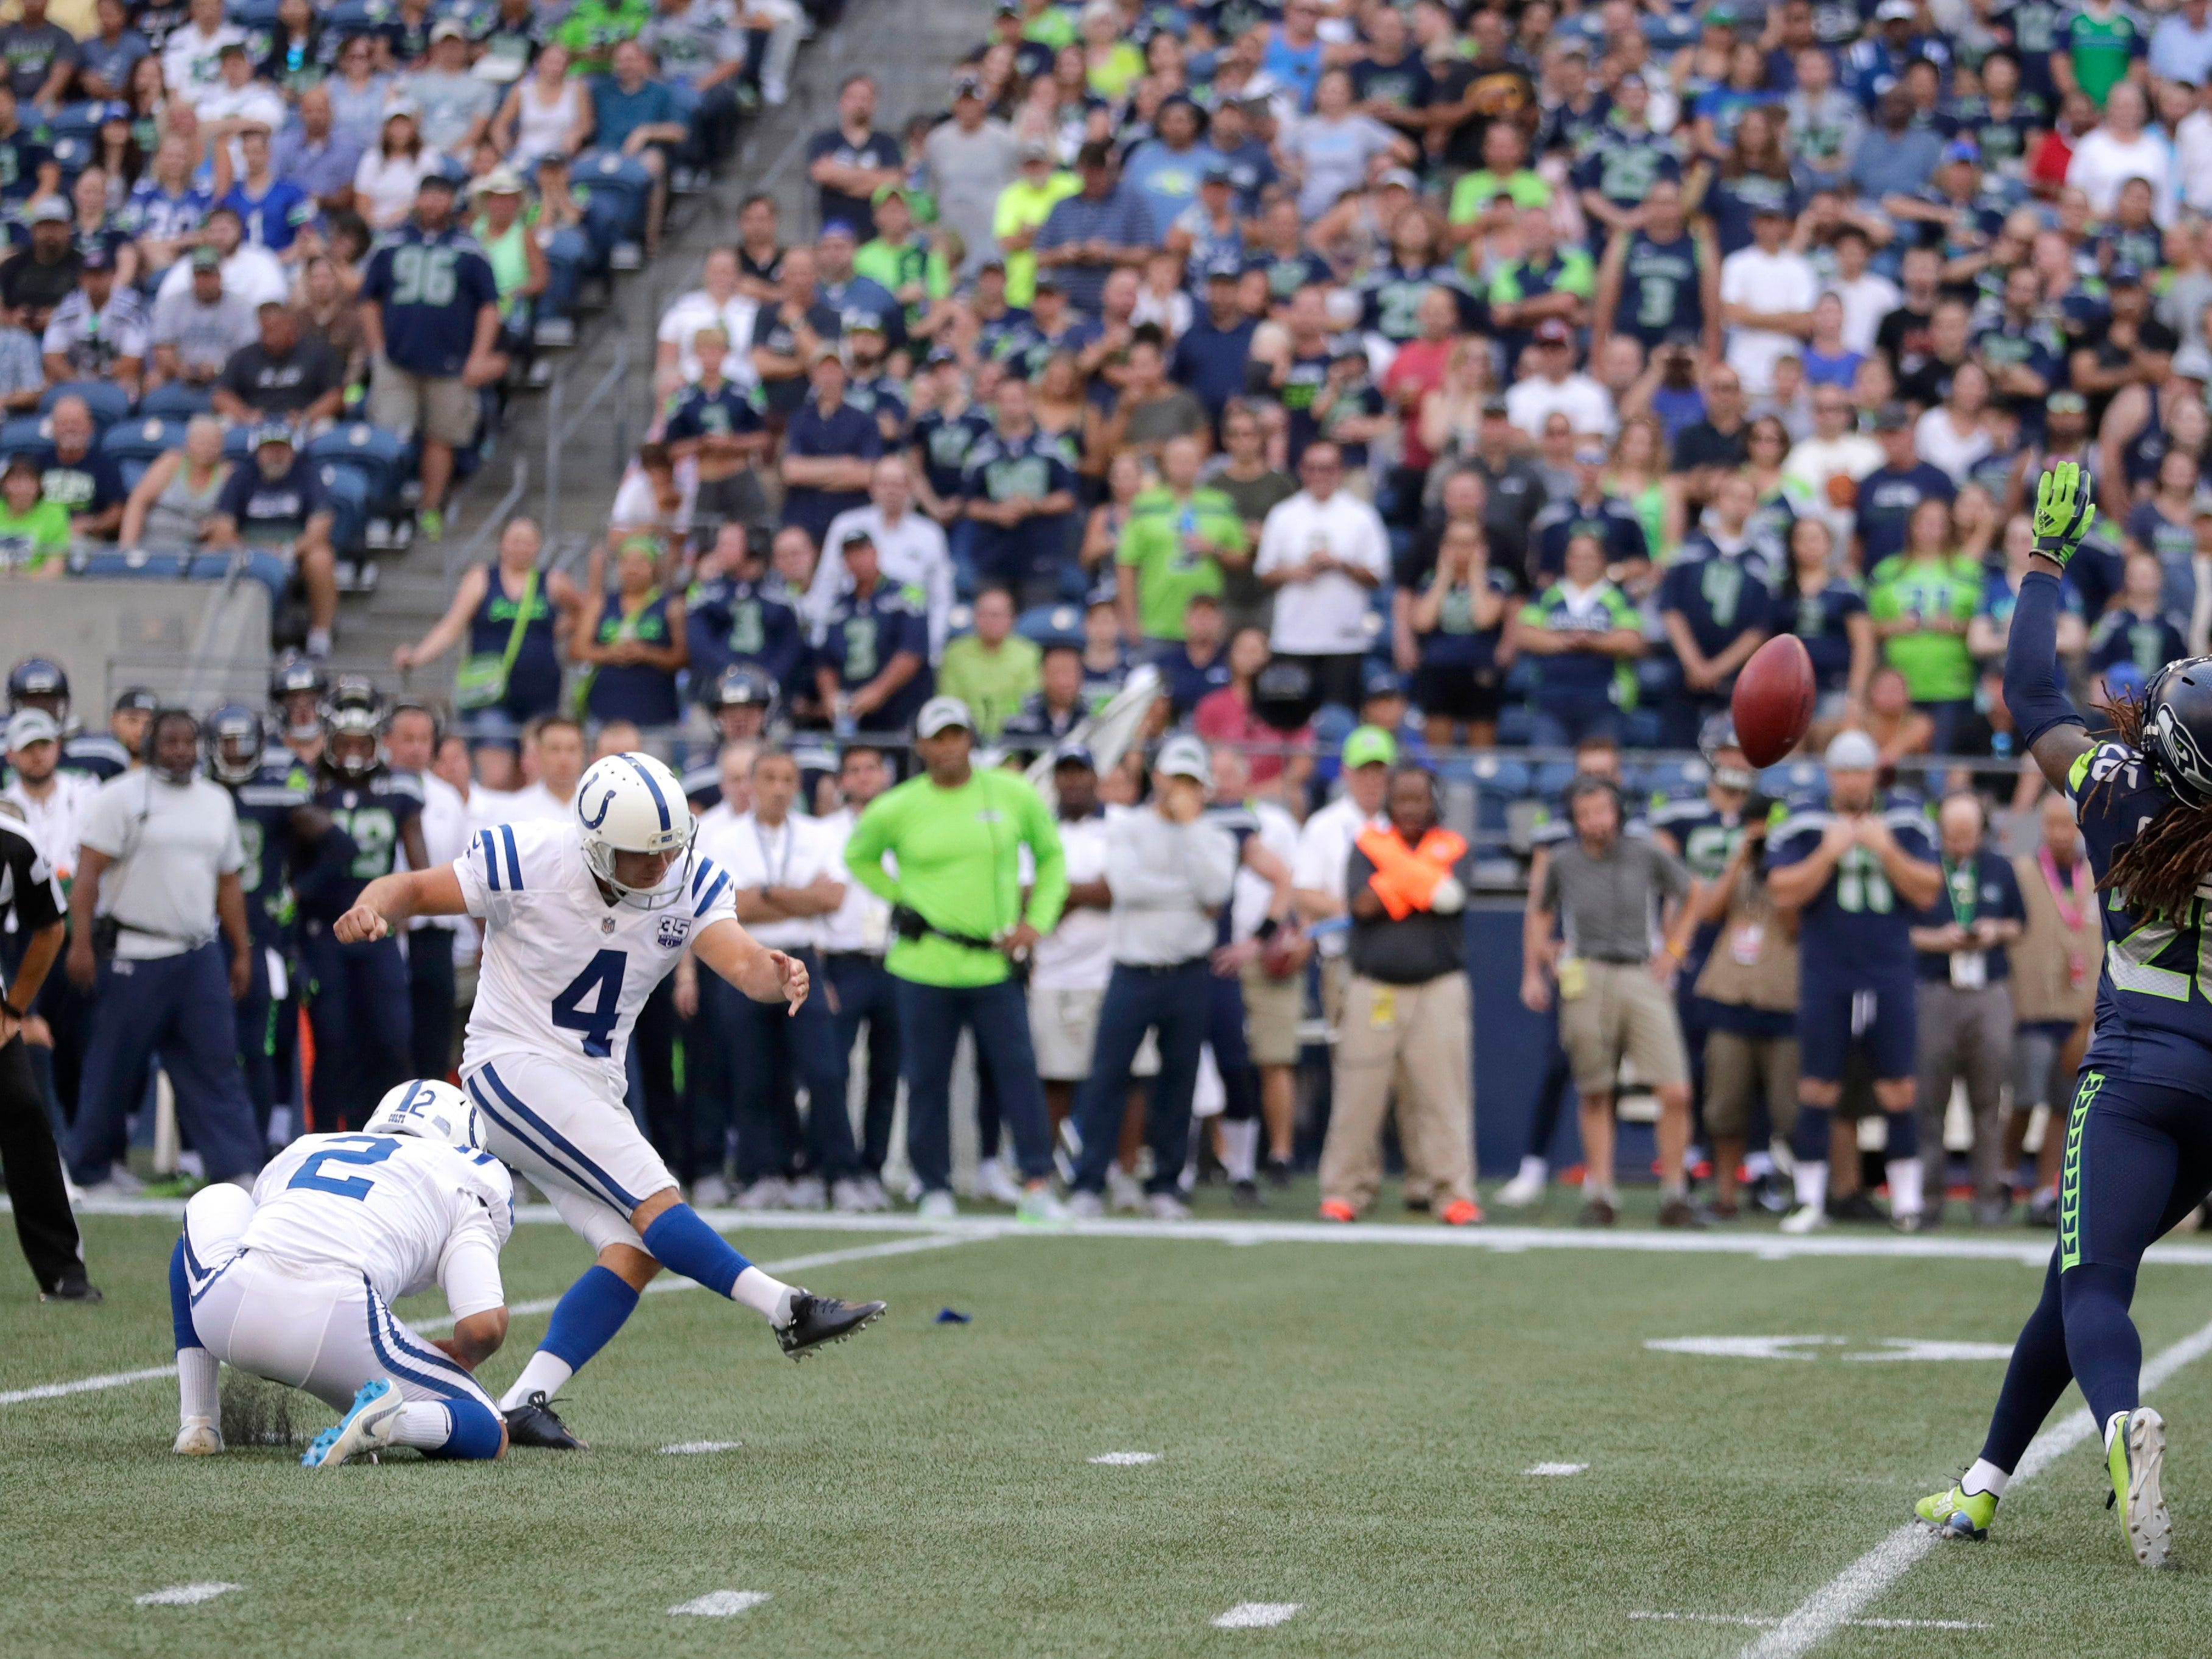 Indianapolis Colts kicker Adam Vinatieri (4) kicks a field goal during the first half of an NFL football preseason game against the Seattle Seahawks, Thursday, Aug. 9, 2018, in Seattle.